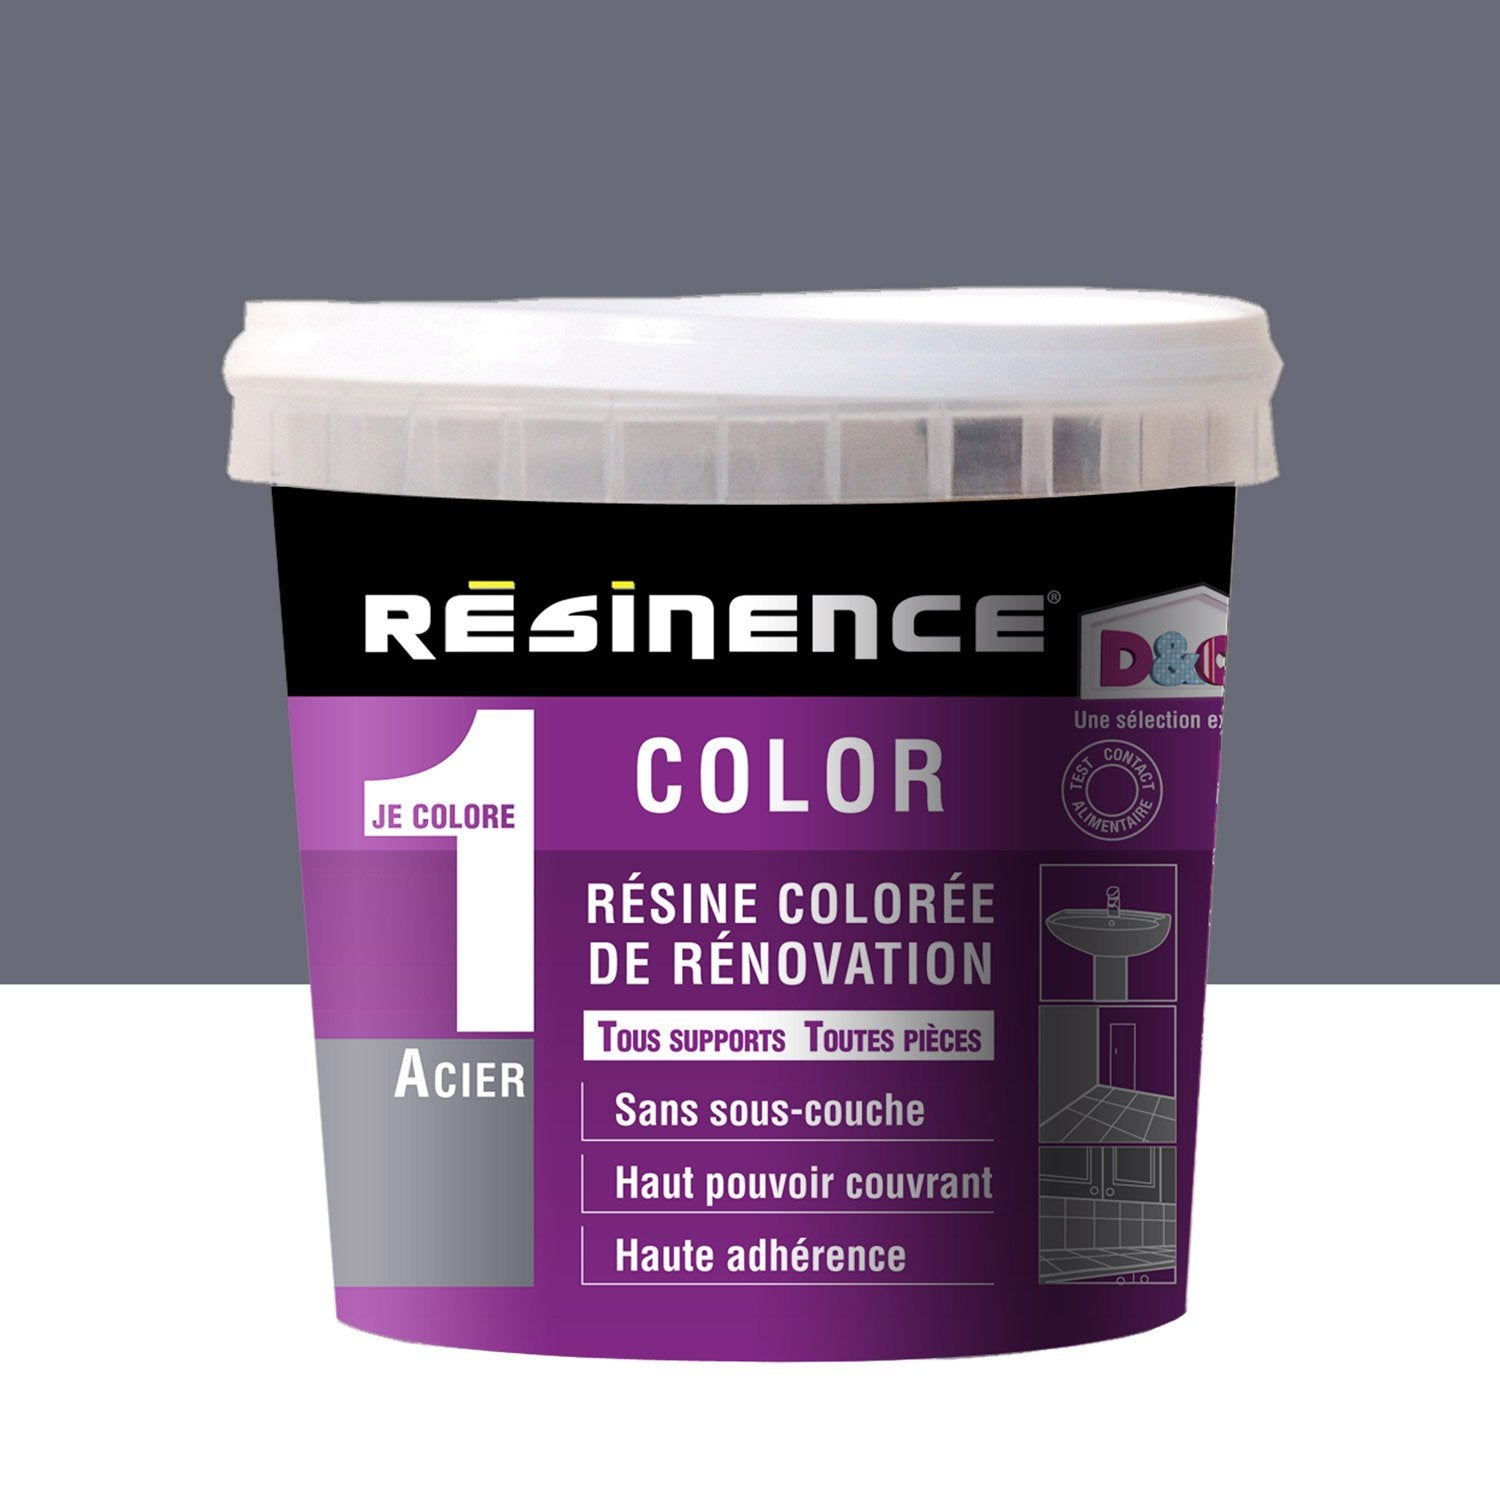 R sine color e color resinence gris acier m tallis for Peinture resinence